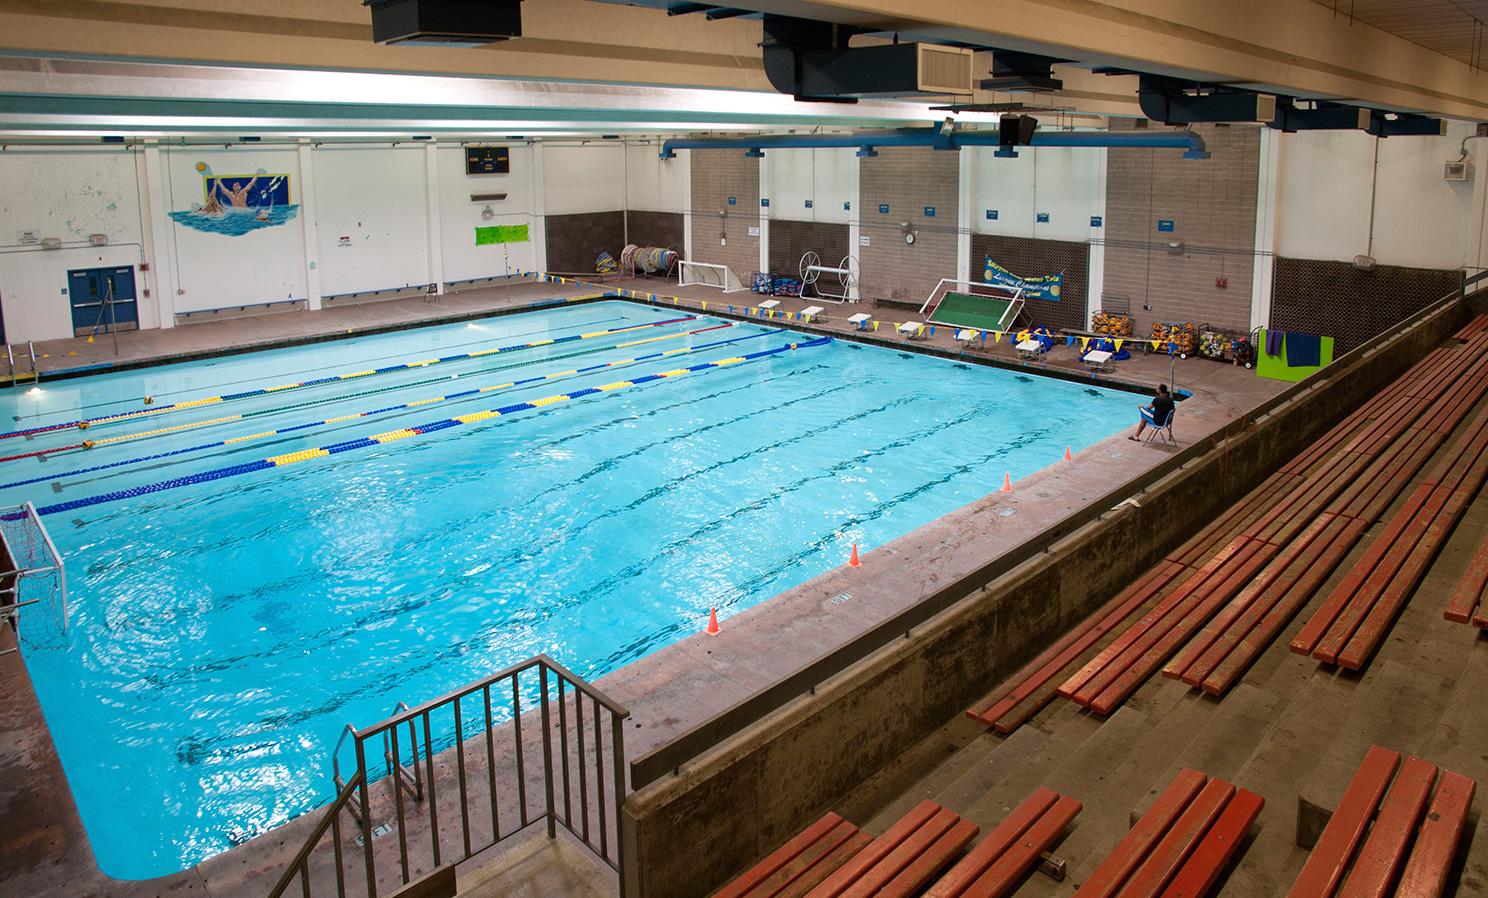 Lung Injury Reported From Pool Chlorine Leak